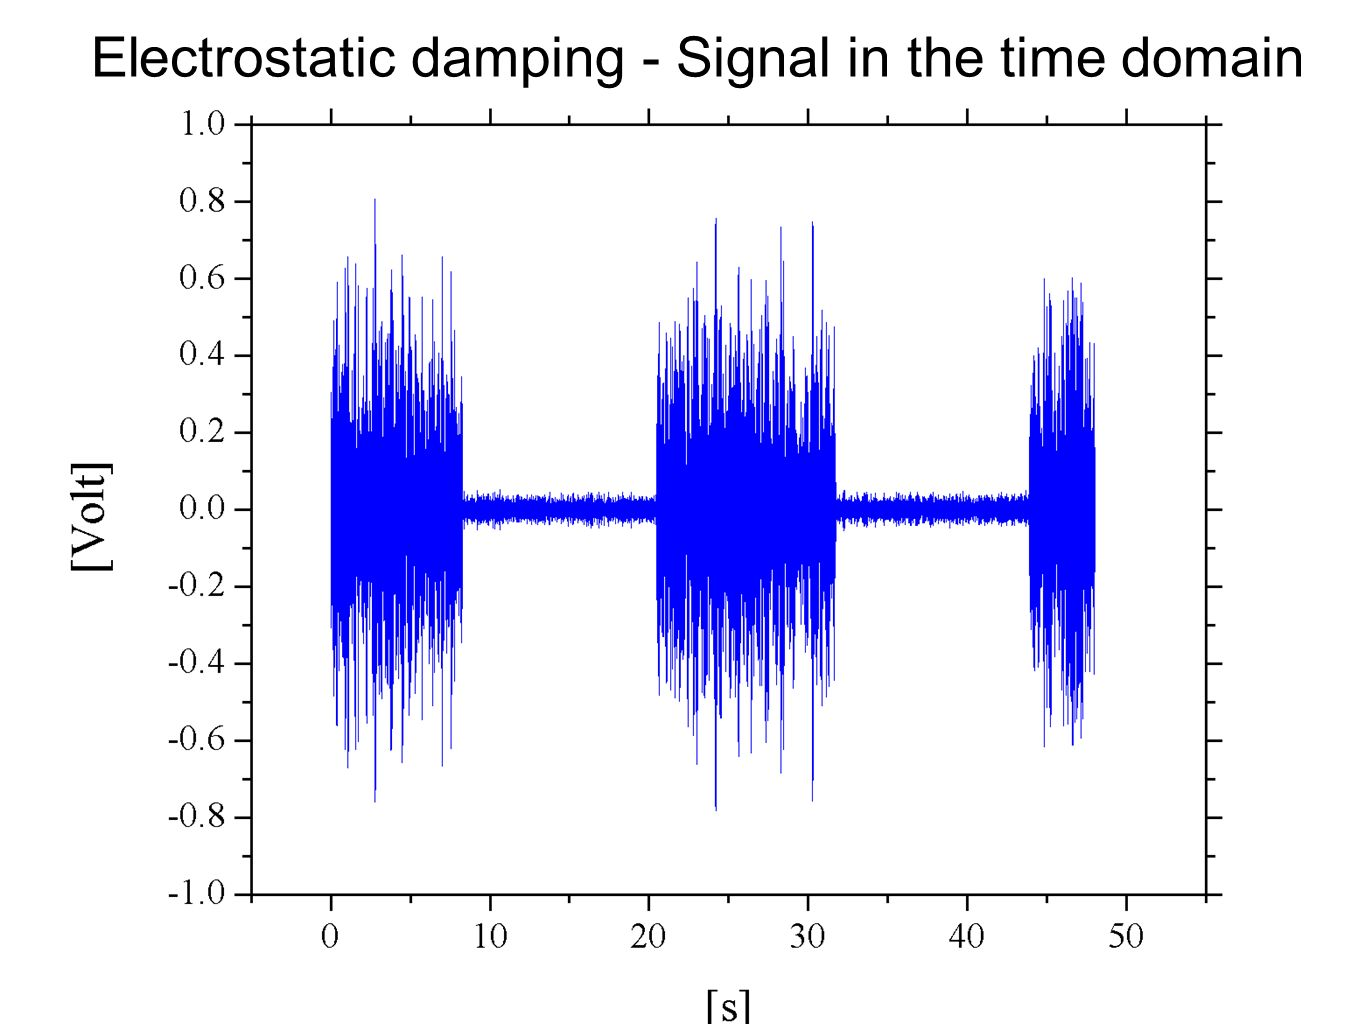 Electrostatic damping - Signal in the time domain